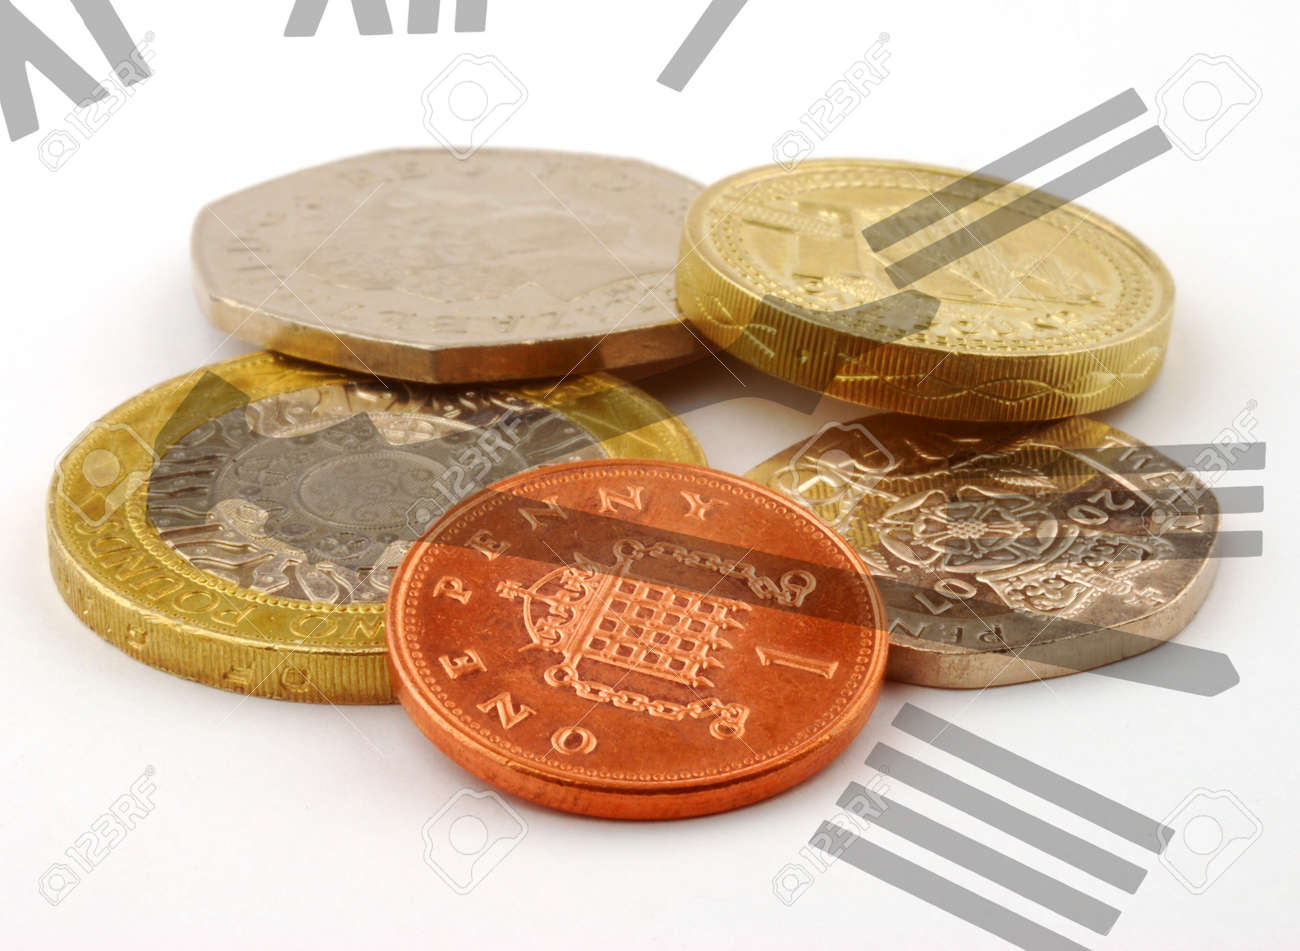 Clock face overlaid over pile of UK coins Stock Photo - 4269921